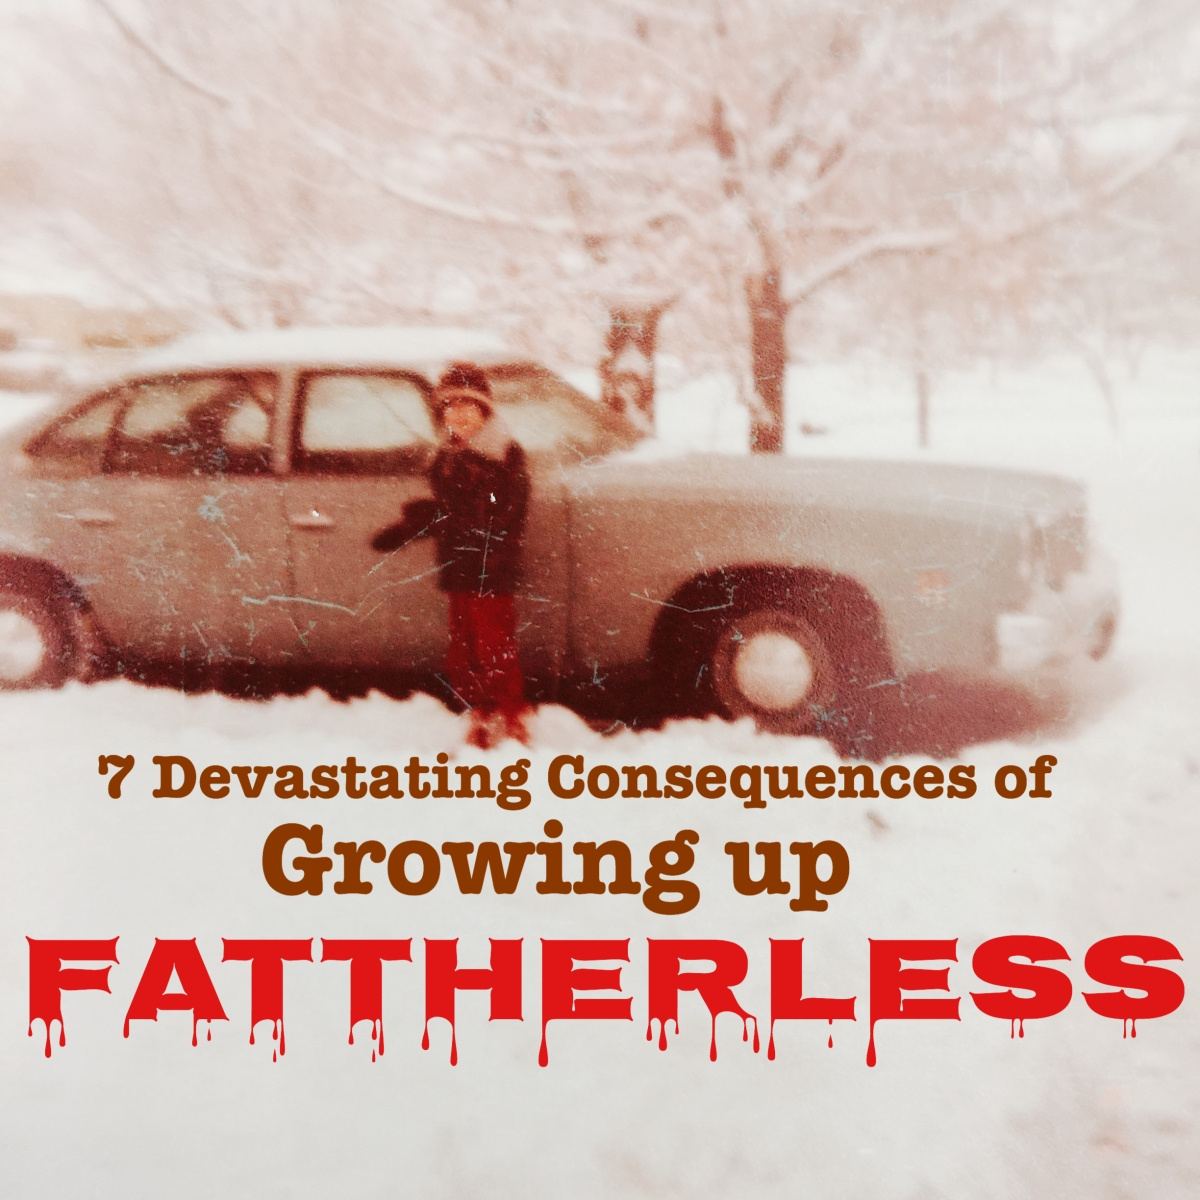 7 Devastating Consequences of Growing up Fatherless